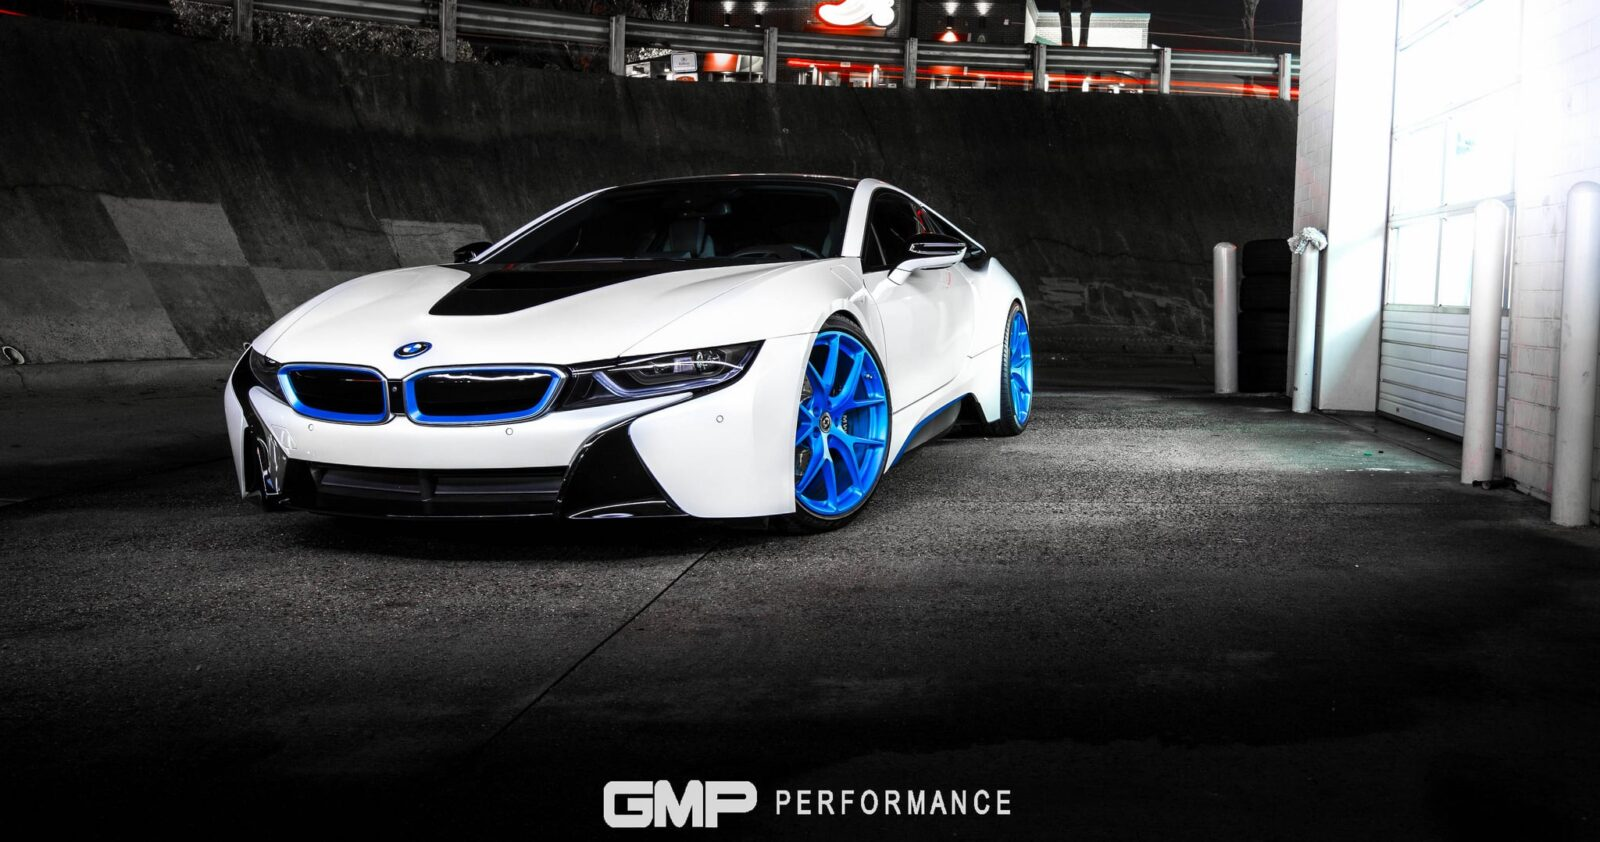 Car Games Wallpapers Hd 1080p 16 Bmw I8 Wallpapers Hd High Quality Download